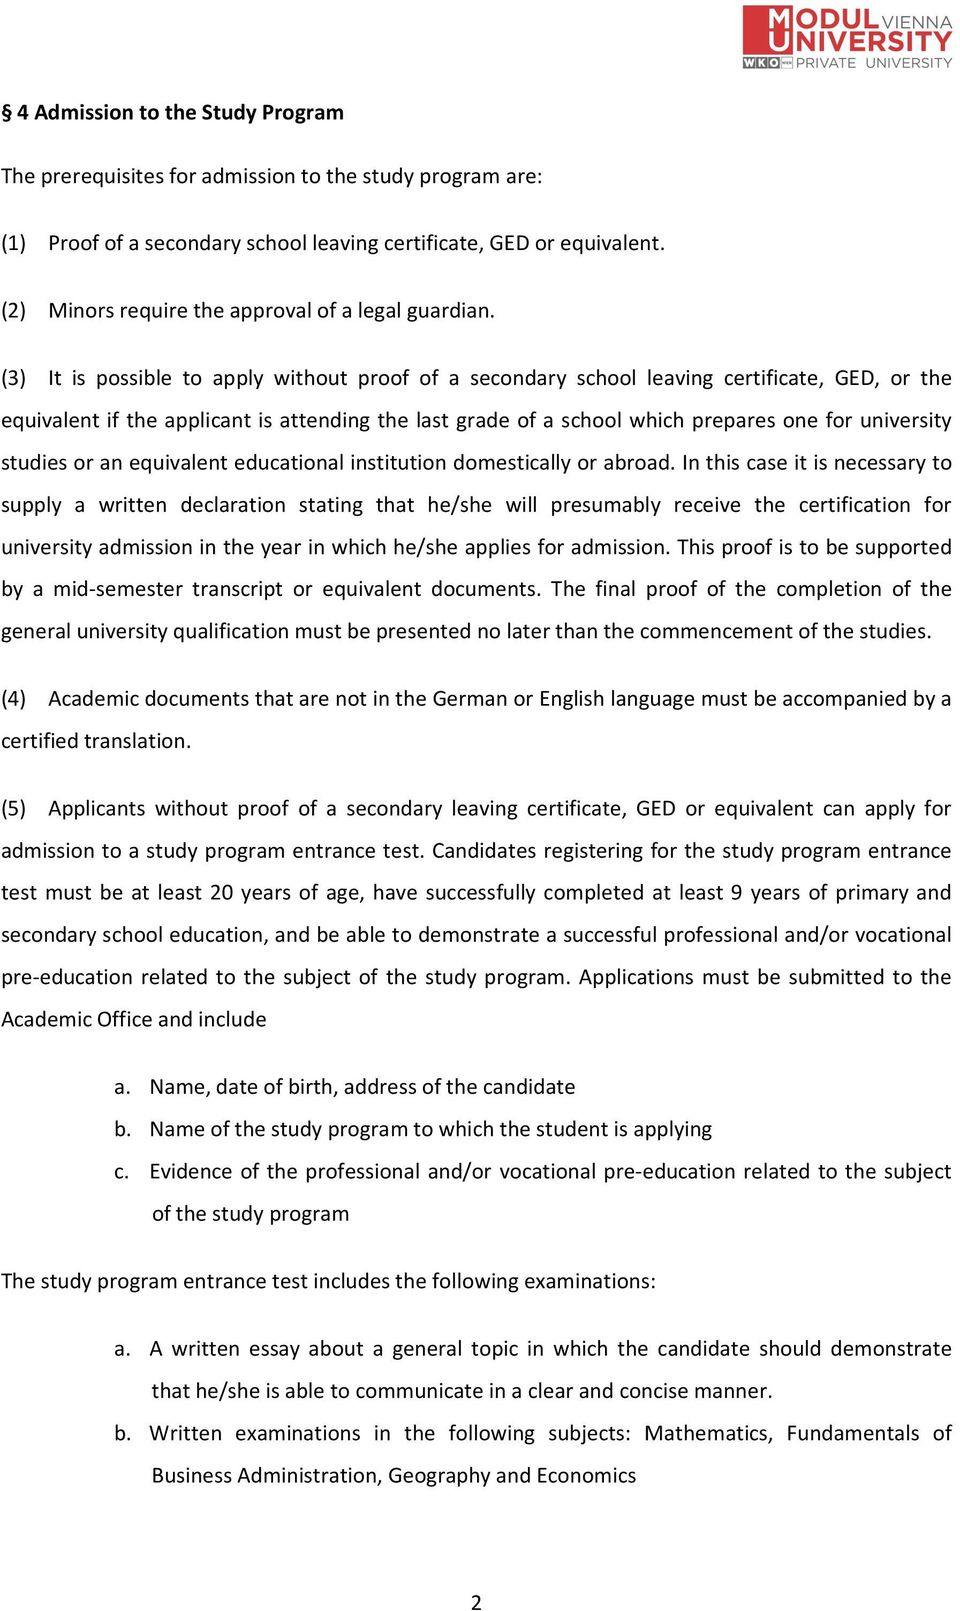 (3) It is possible to apply without proof of a secondary school leaving certificate, GED, or the equivalent if the applicant is attending the last grade of a school which prepares one for university